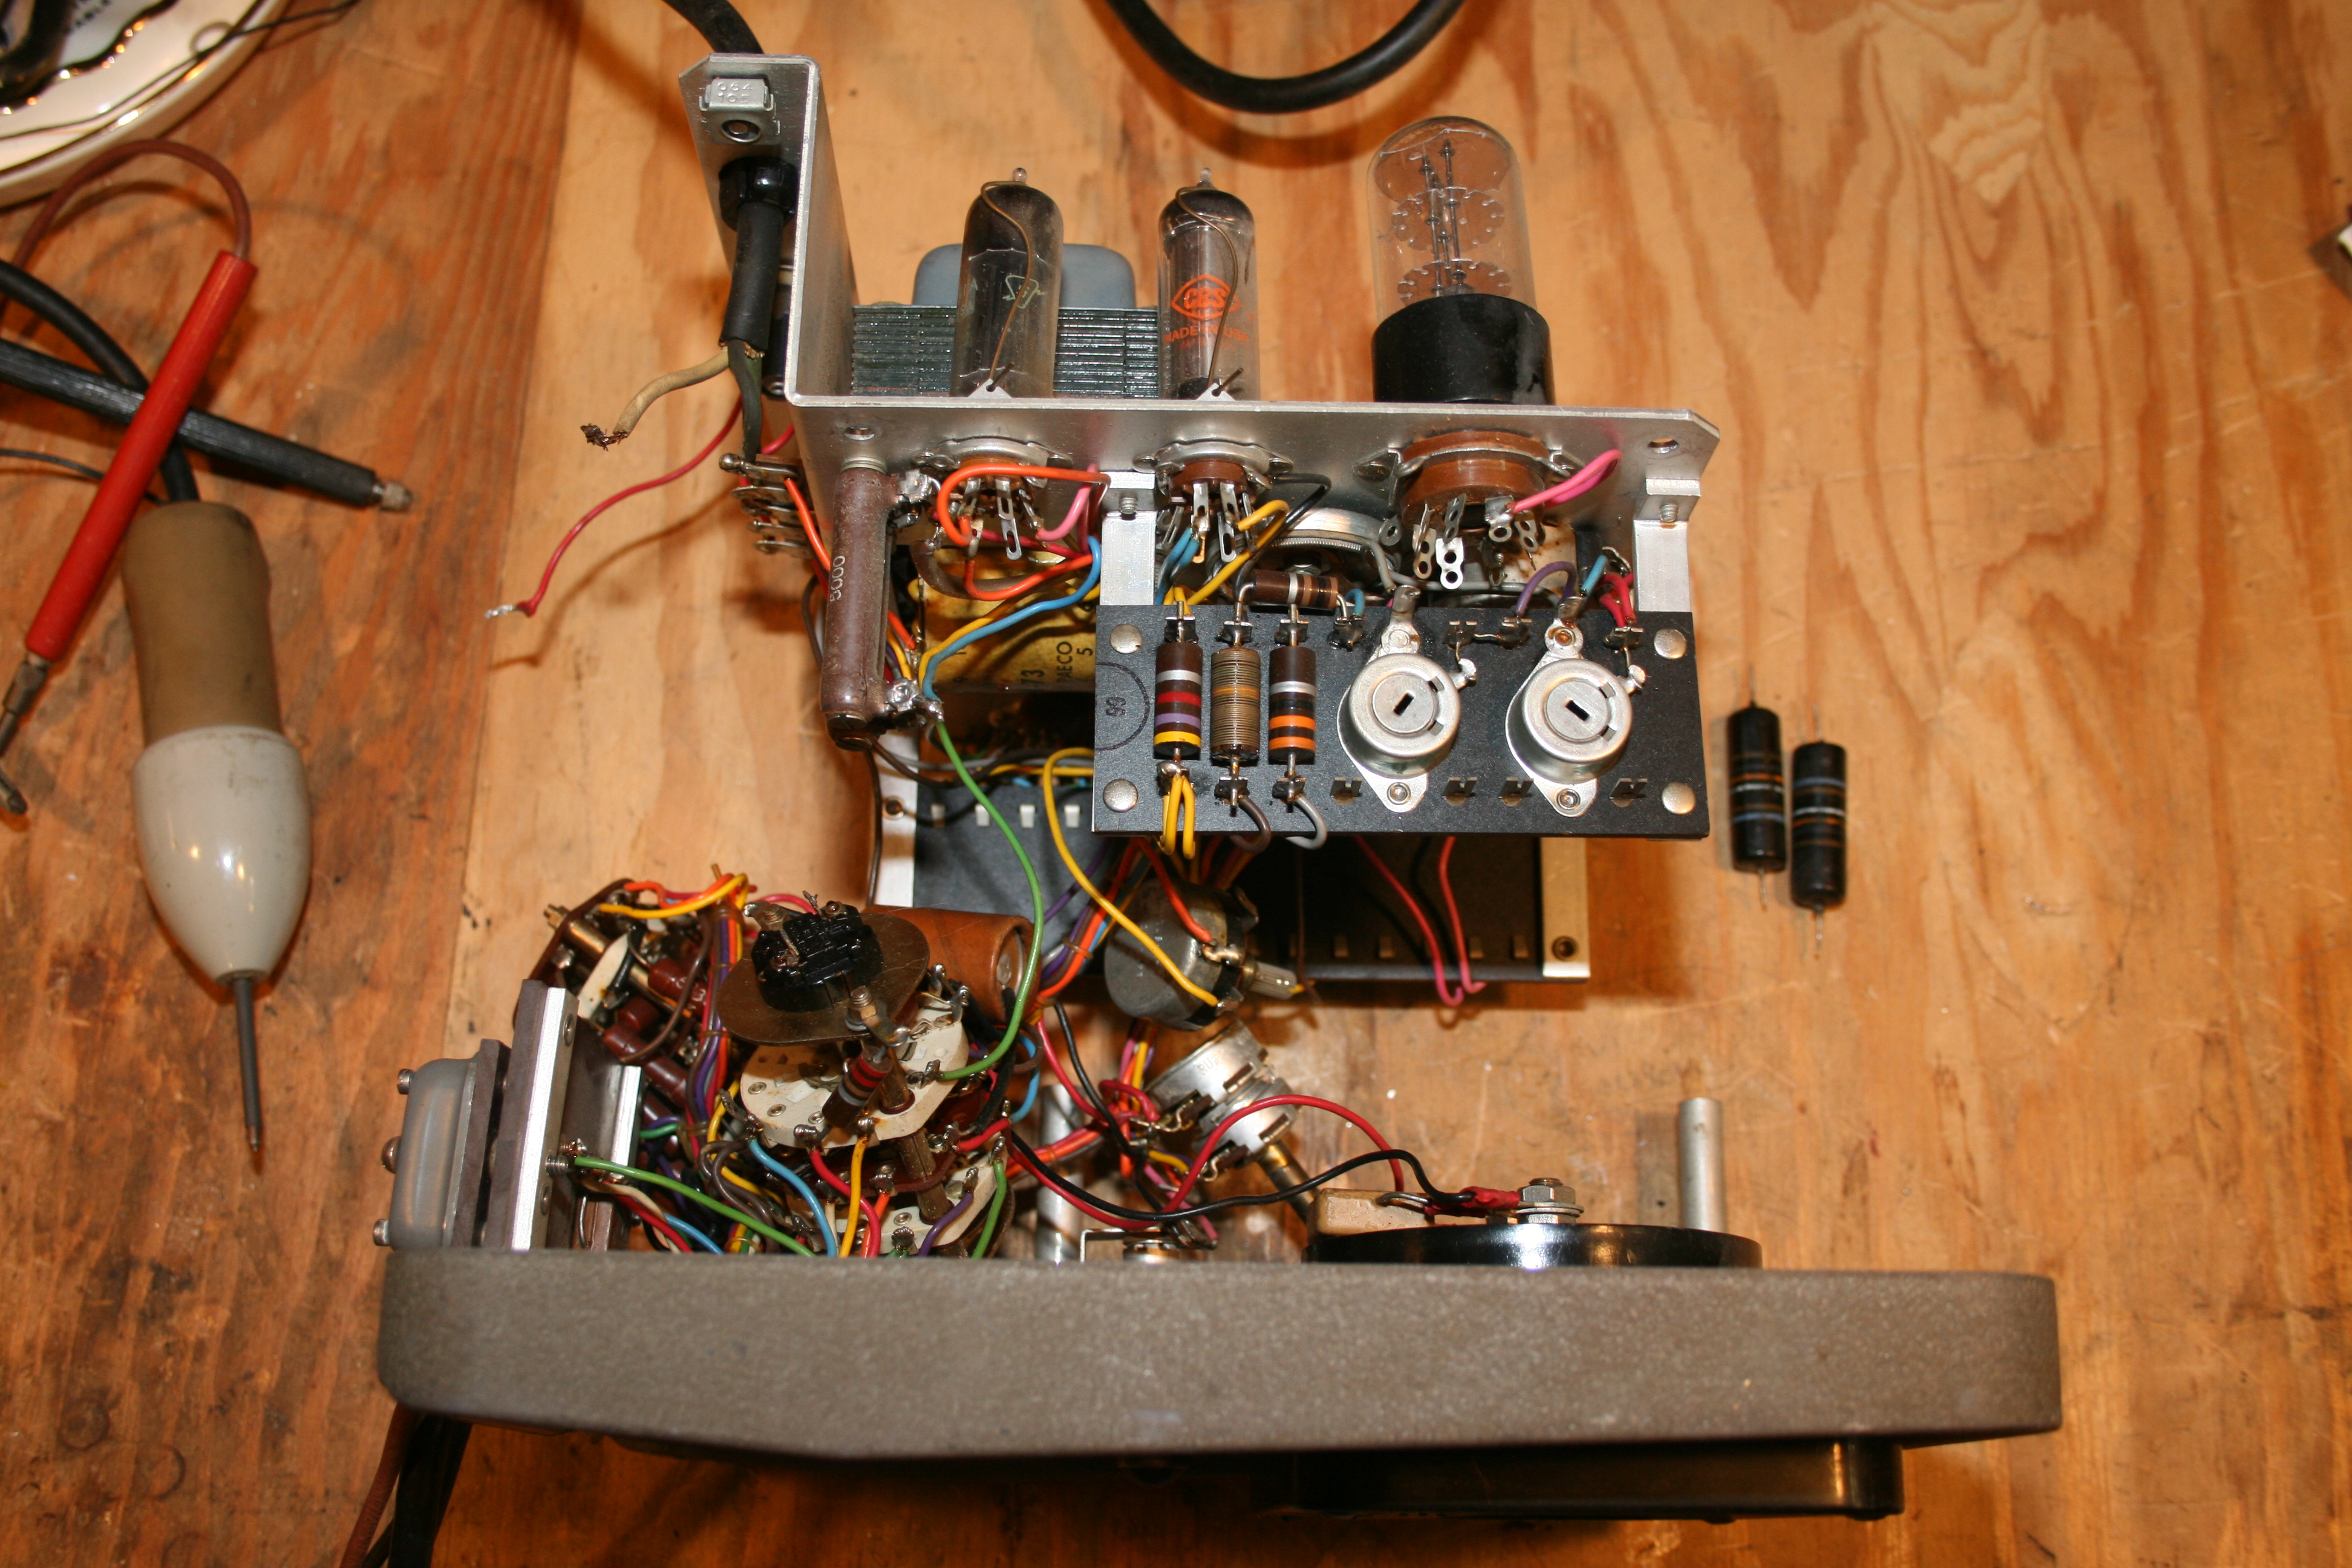 Hp 410b Restoration Steves Web Junkyard Steve Byan Hewlett Packard Wiring Diagram Its A Pain To Get Inside Work On The Meter I Had Disconnect Ac Power Connection And Remove All Front Panel Controls Innards